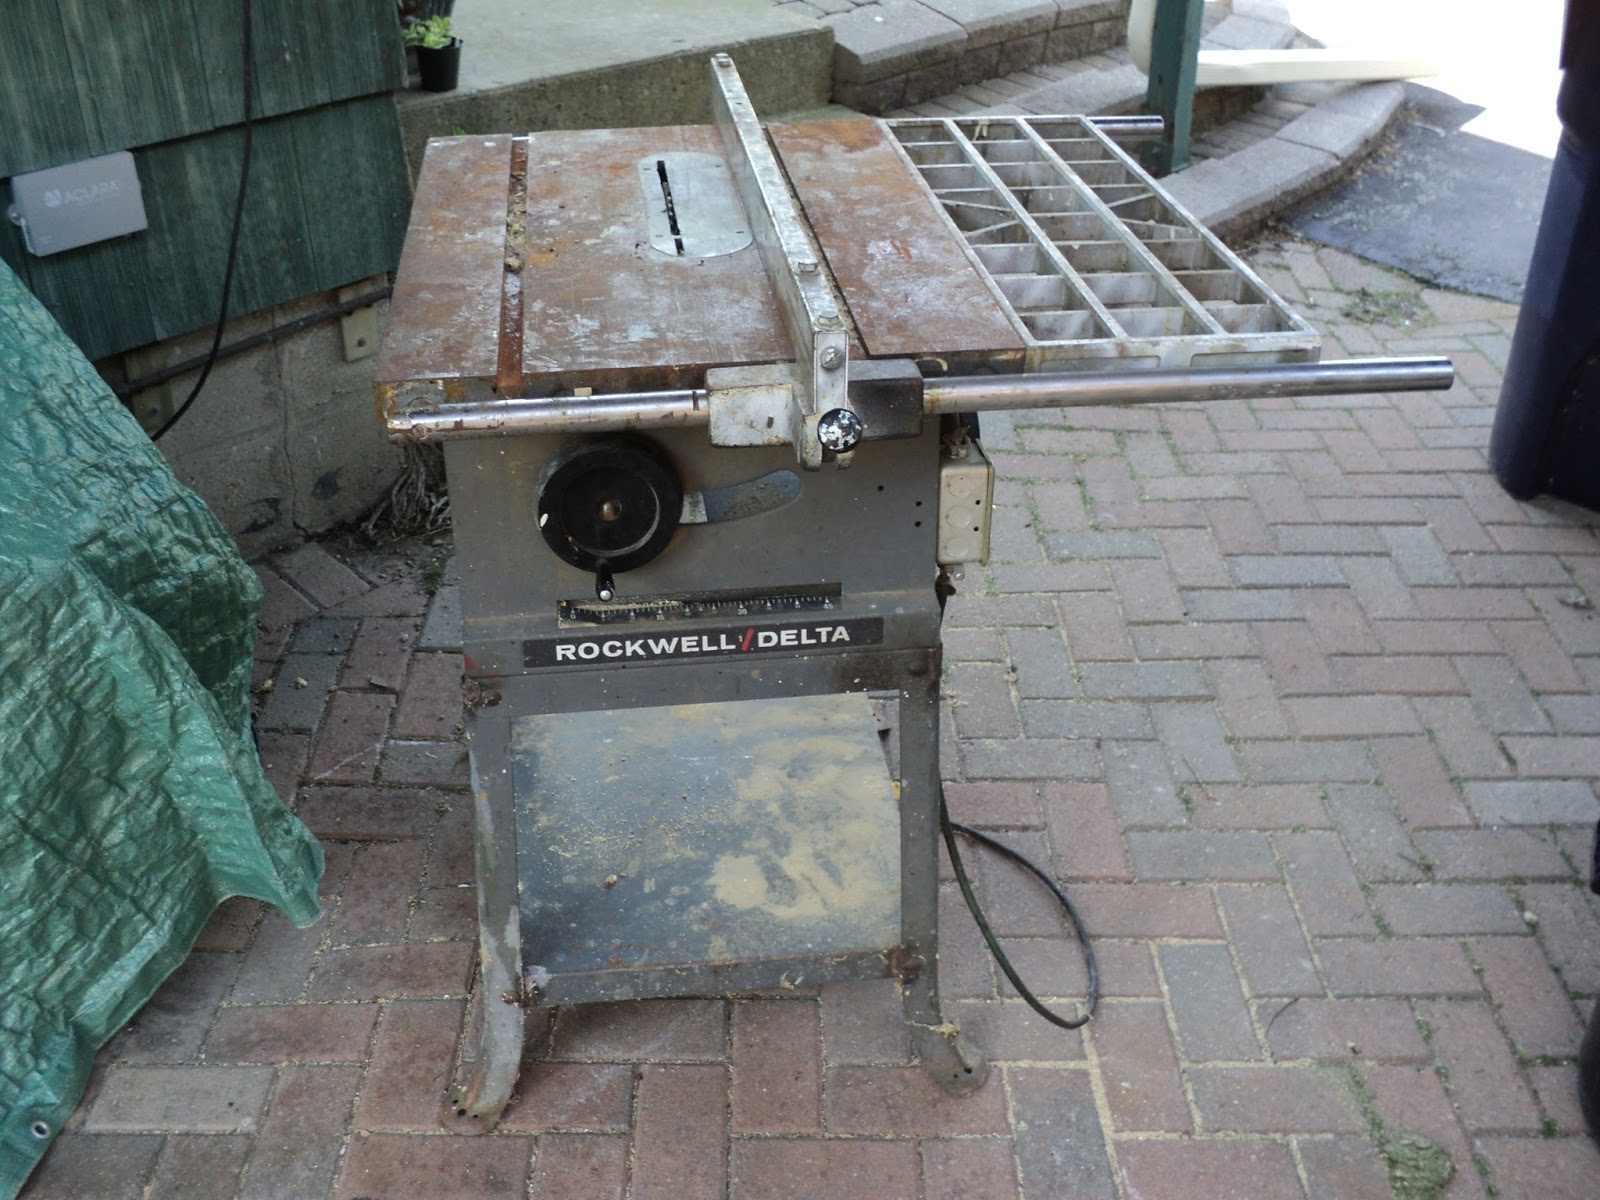 A Rockwell Delta 10 Table Saw This Shabby Old Was In My Deceased Next Door Neighbour S Garage For Knows How Long